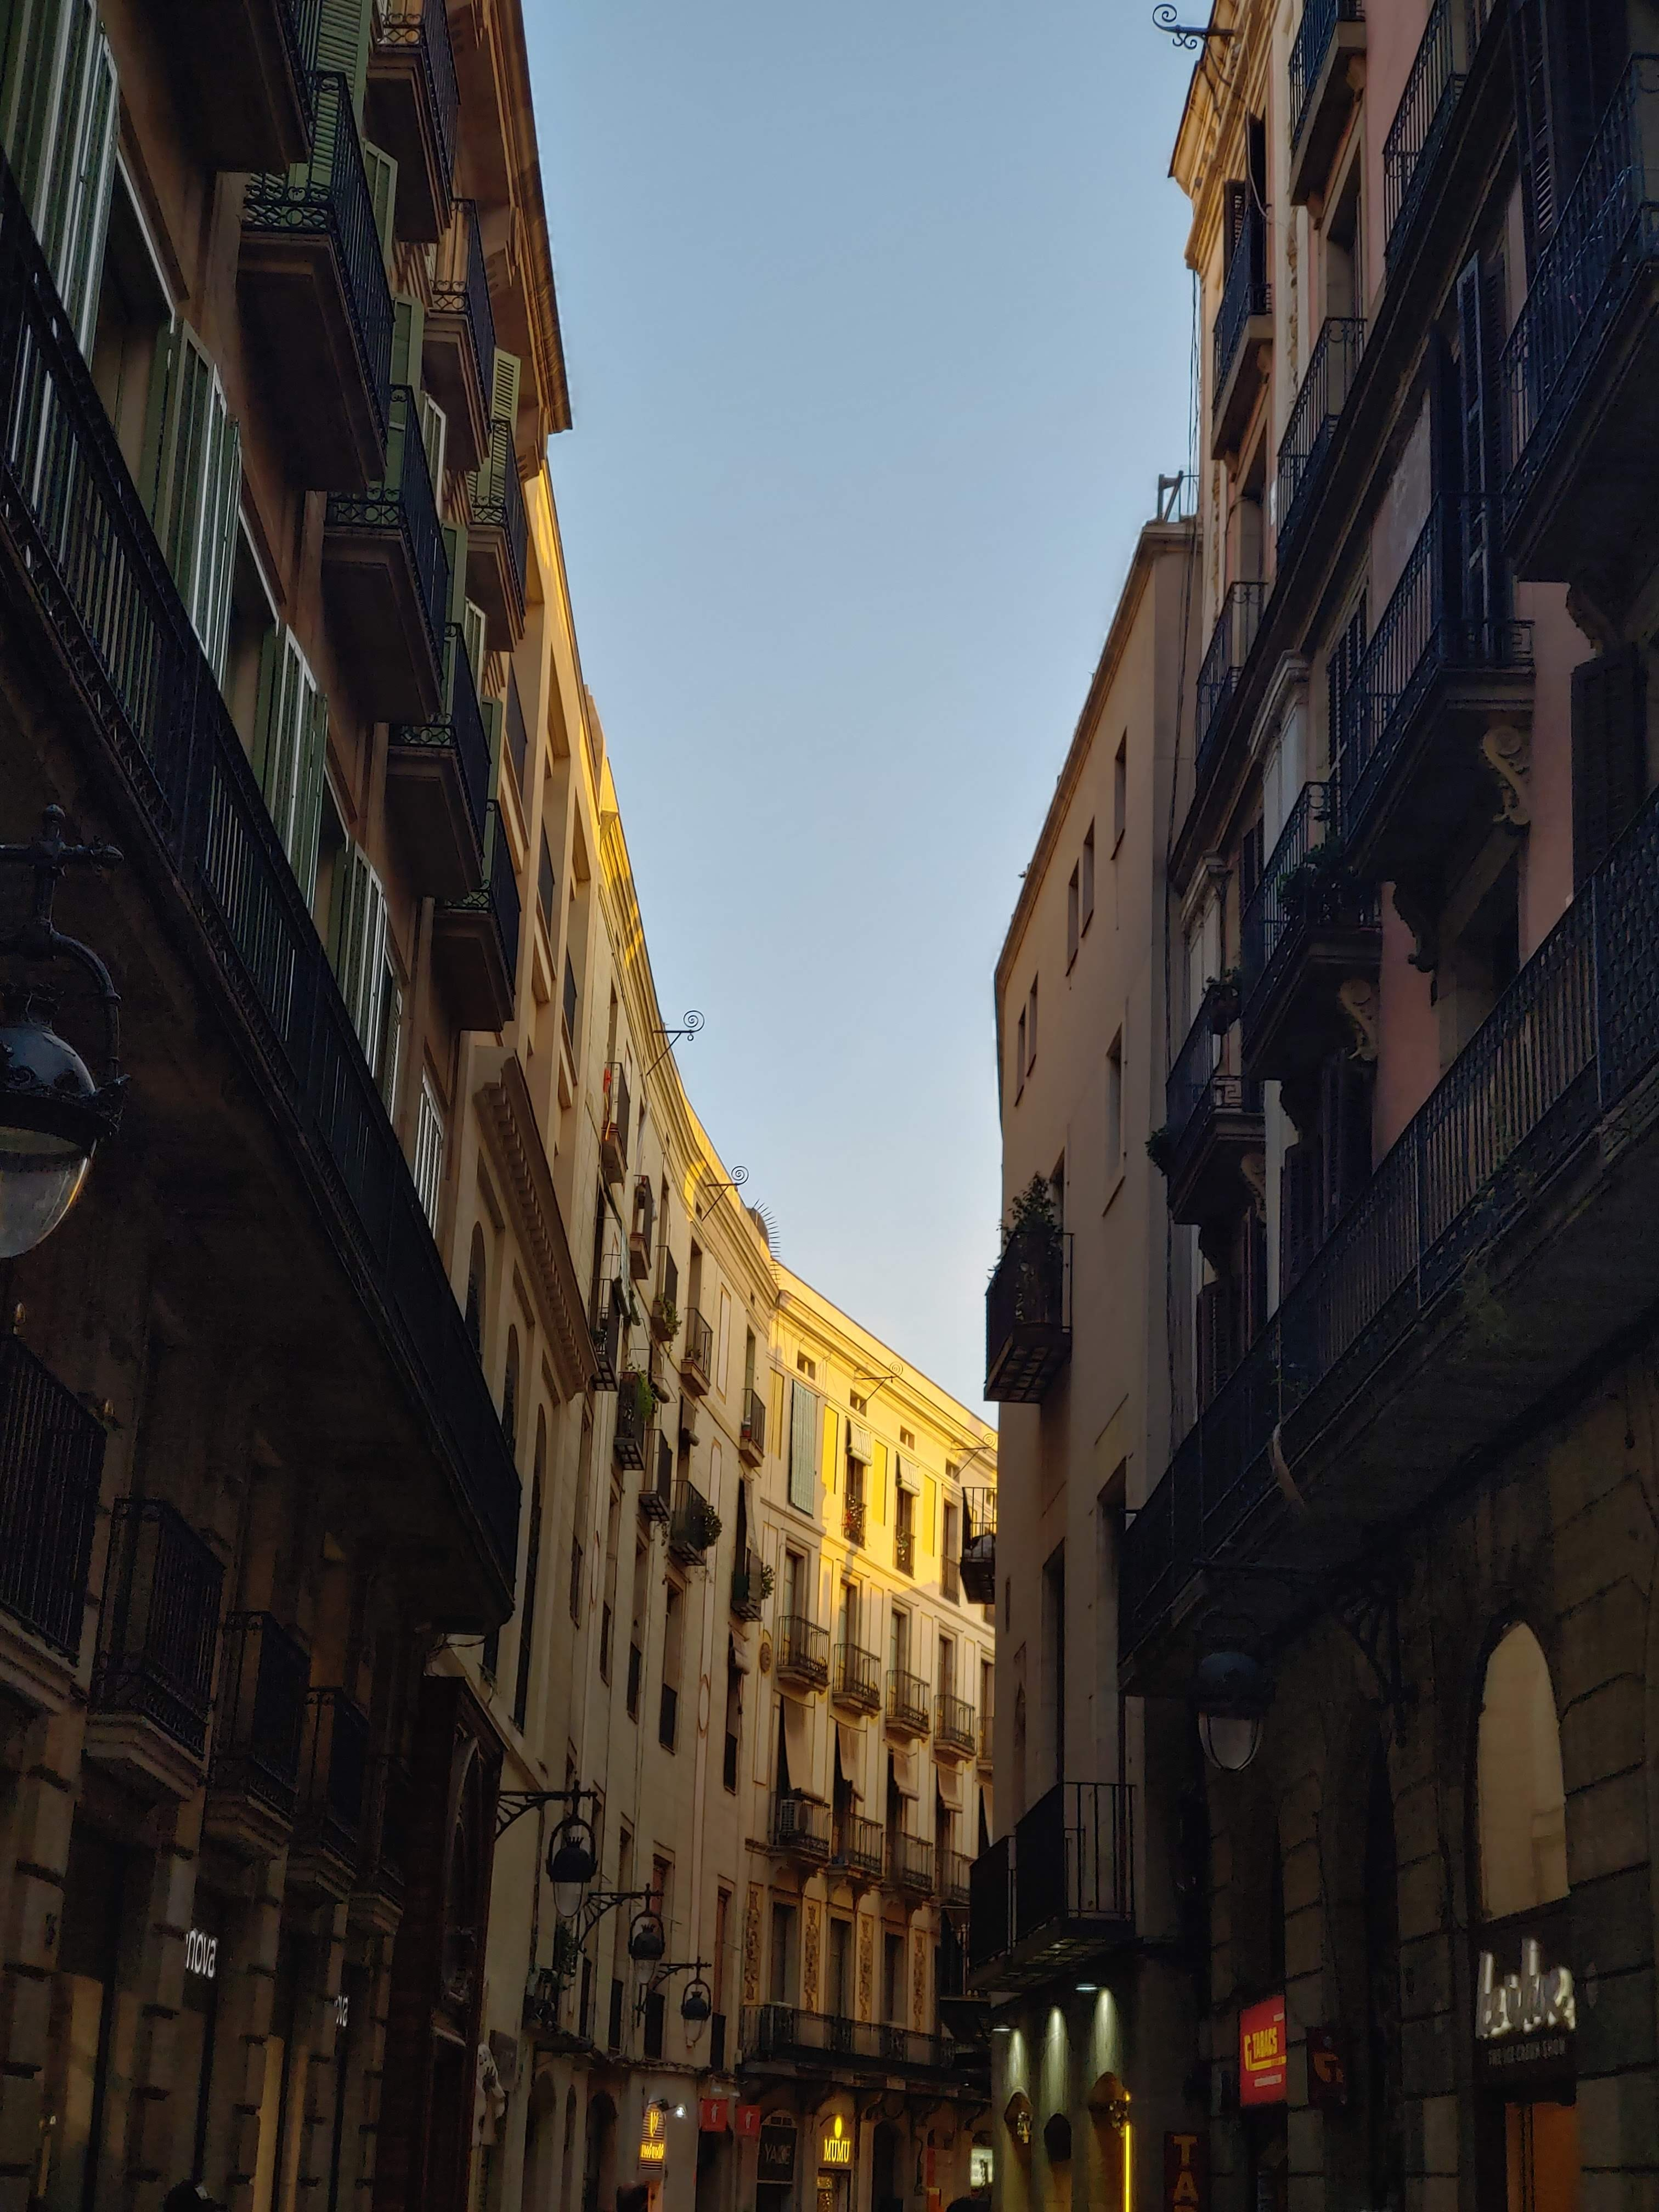 Visit Barcelona: Why You Should Not Miss Out This Wonderful City Part 2